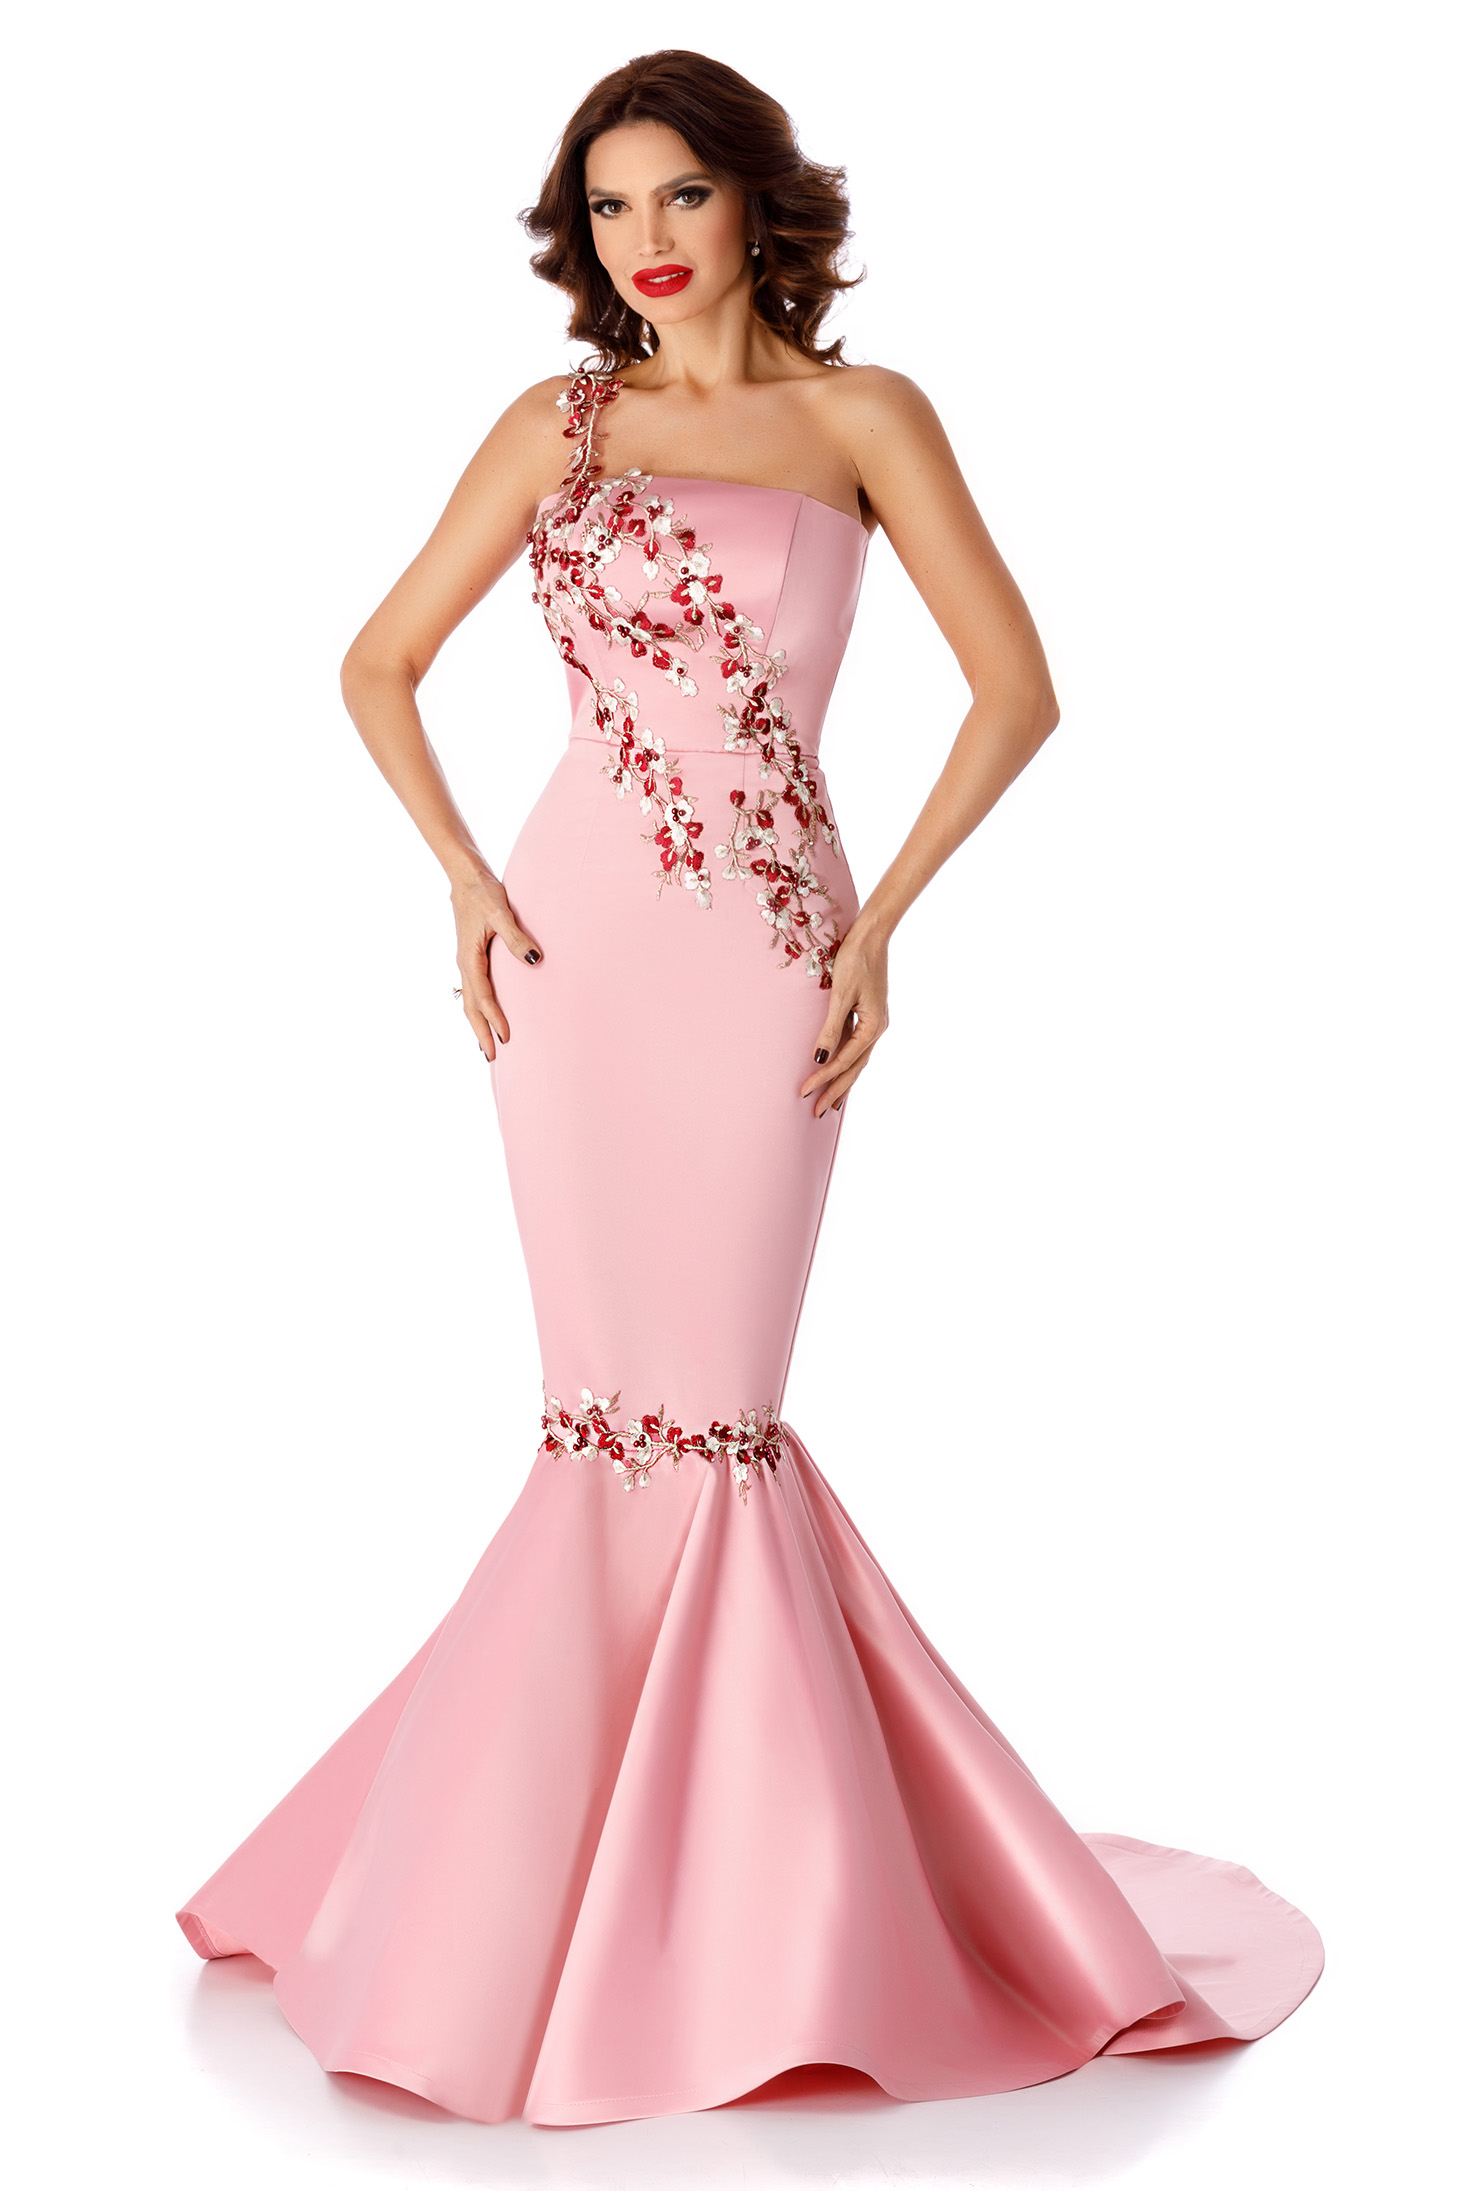 Pink dress mermaid cut sleeveless occasional with lace details